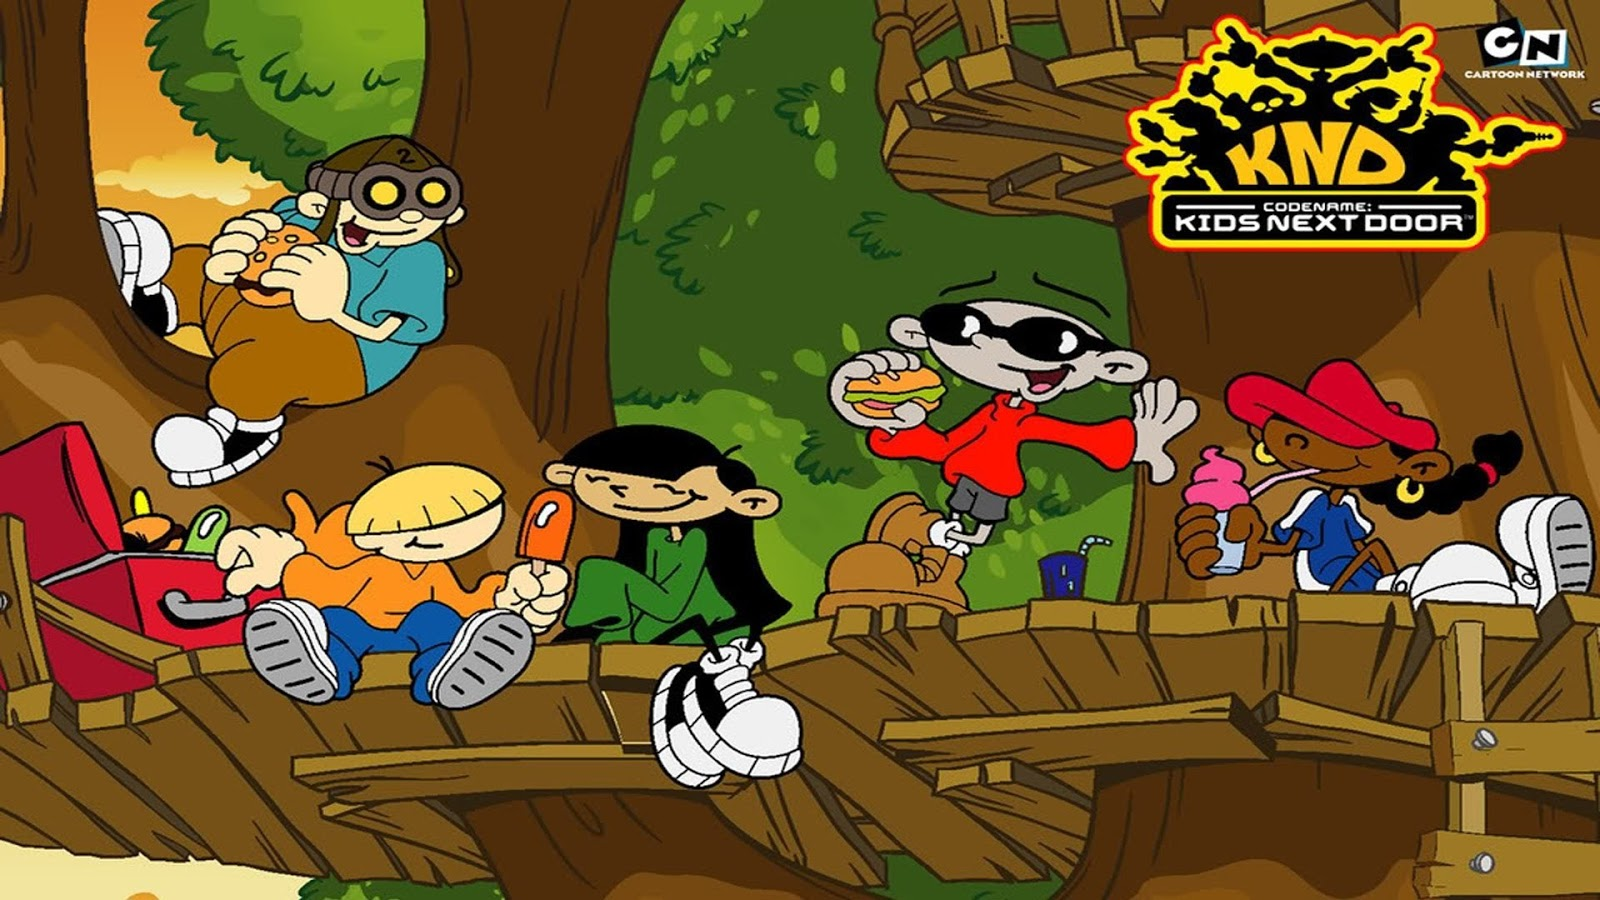 Old Cartoon Network Shows Time To Get Nostalgic Subscribe to treehouse direct for new clips, episodes. old cartoon network shows time to get